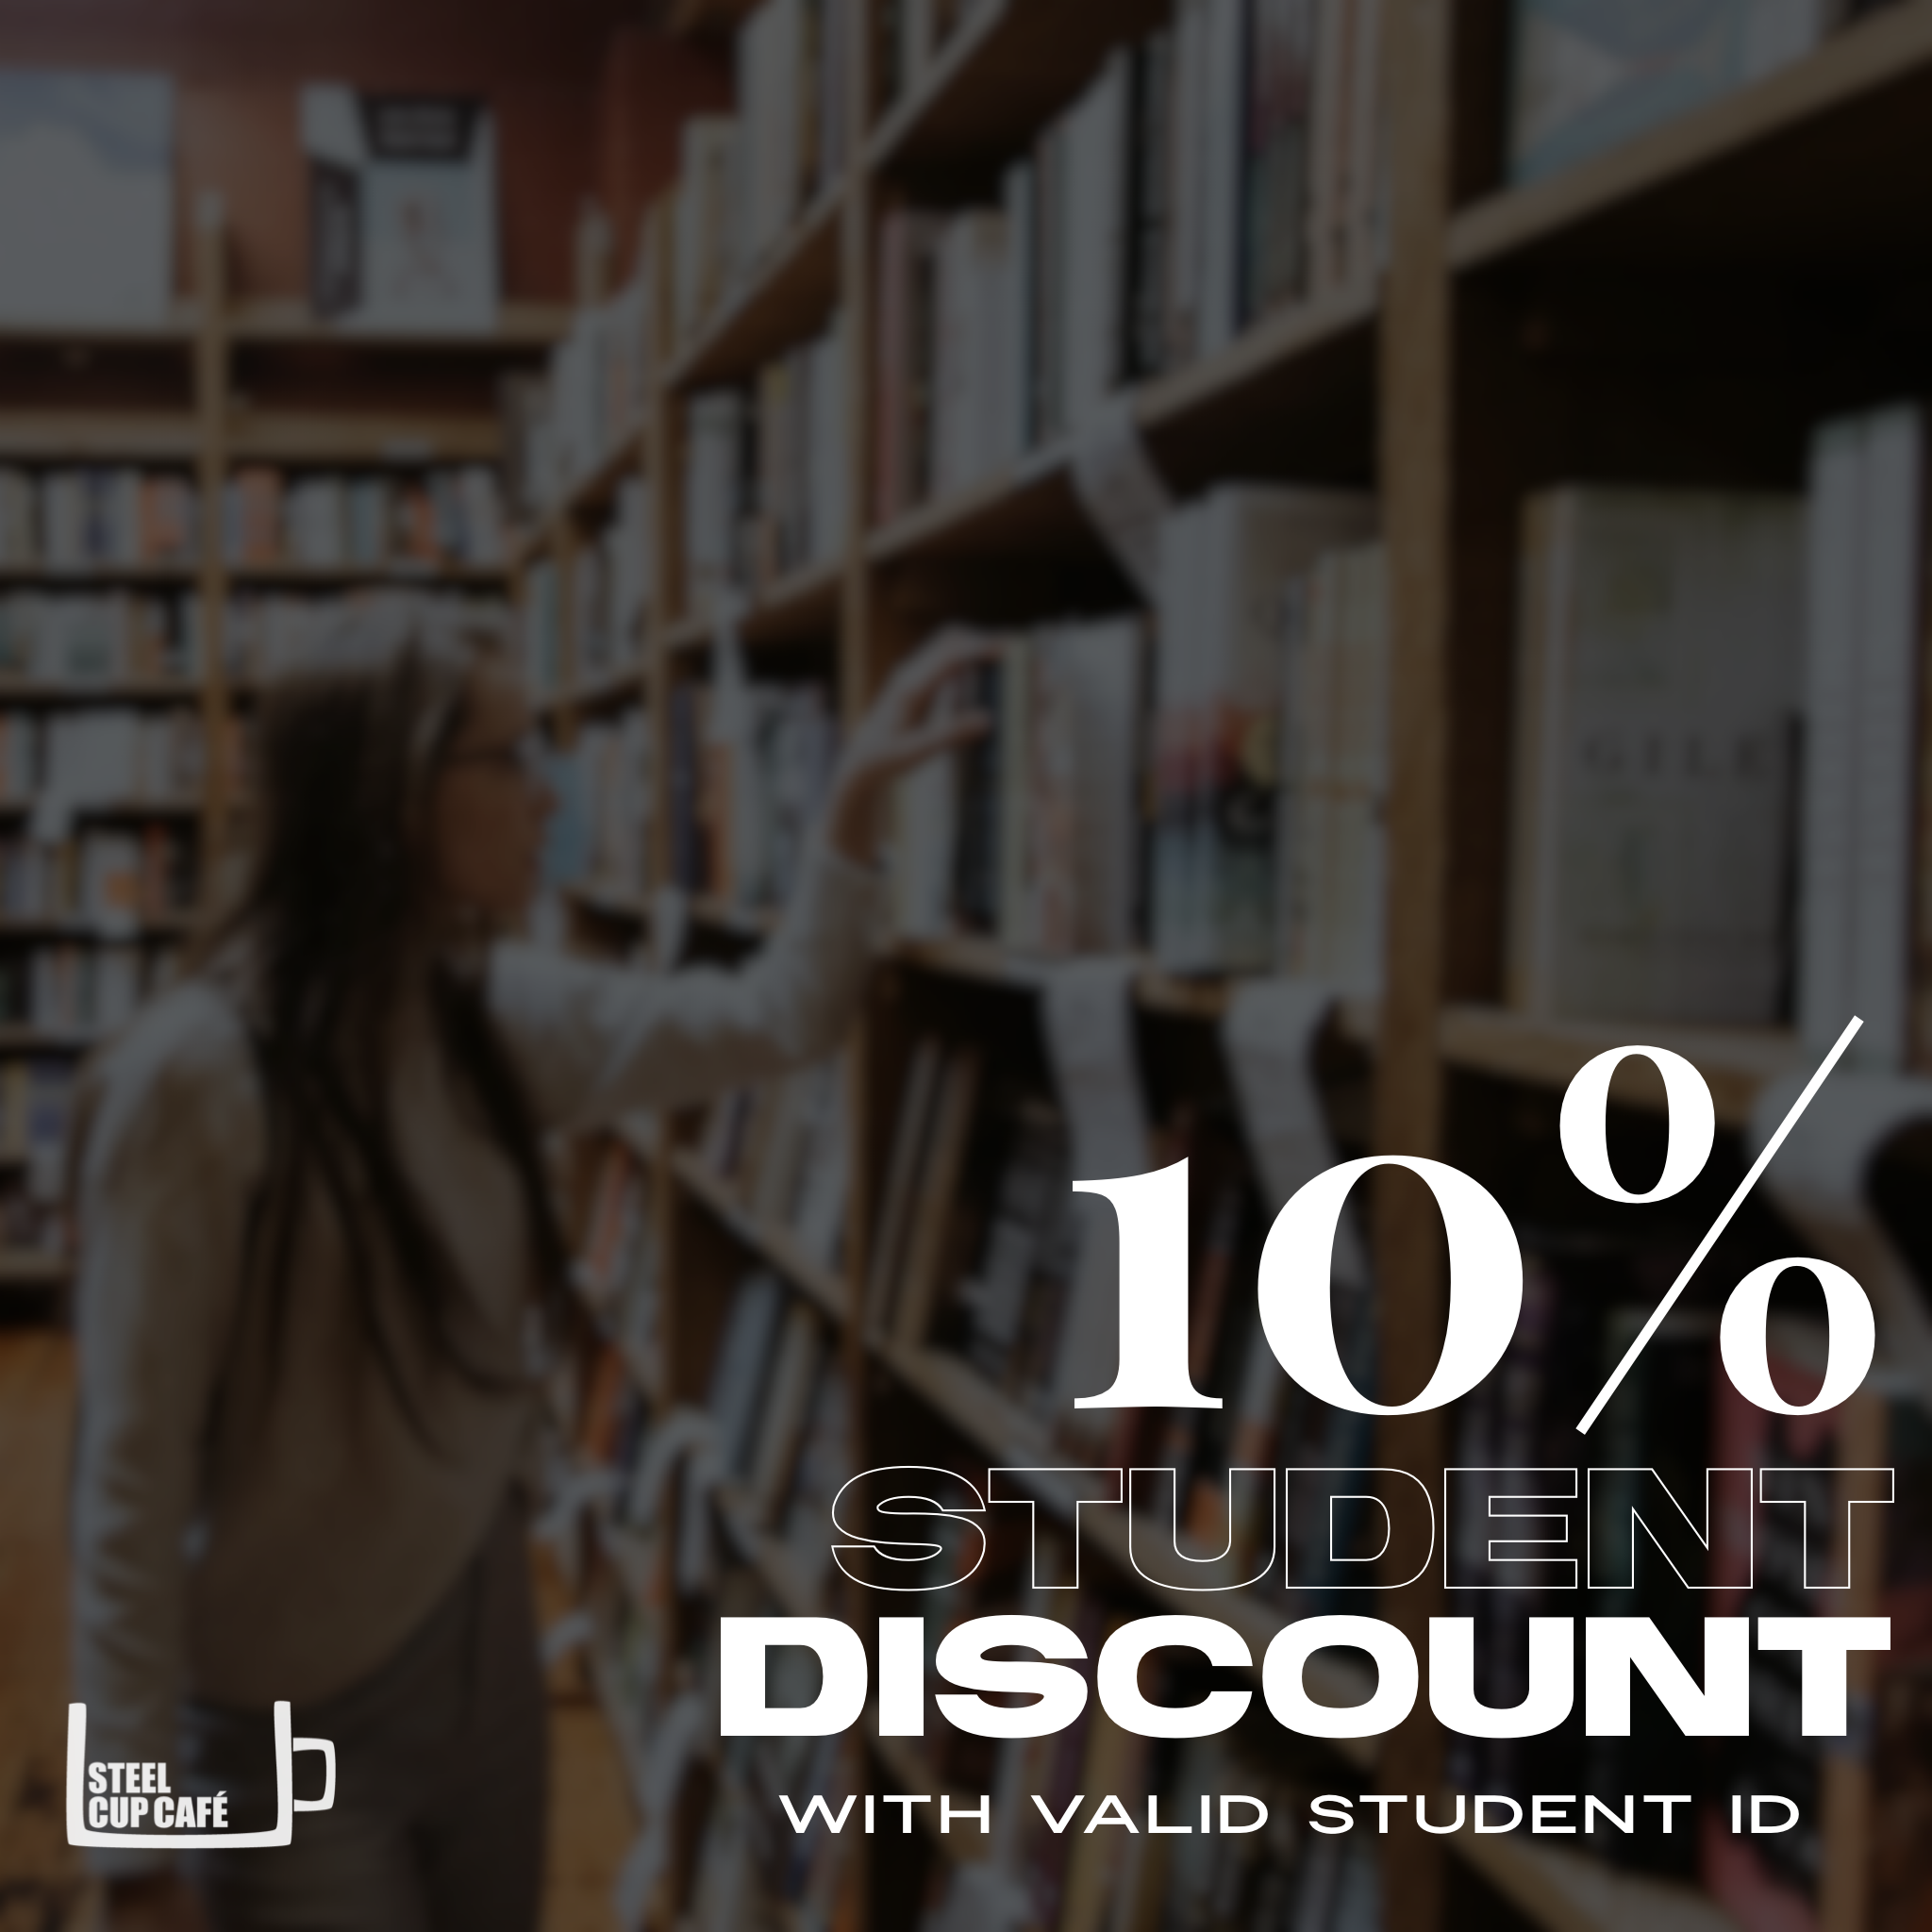 Student Discount - Take 10% off your entire purchase with valid student ID